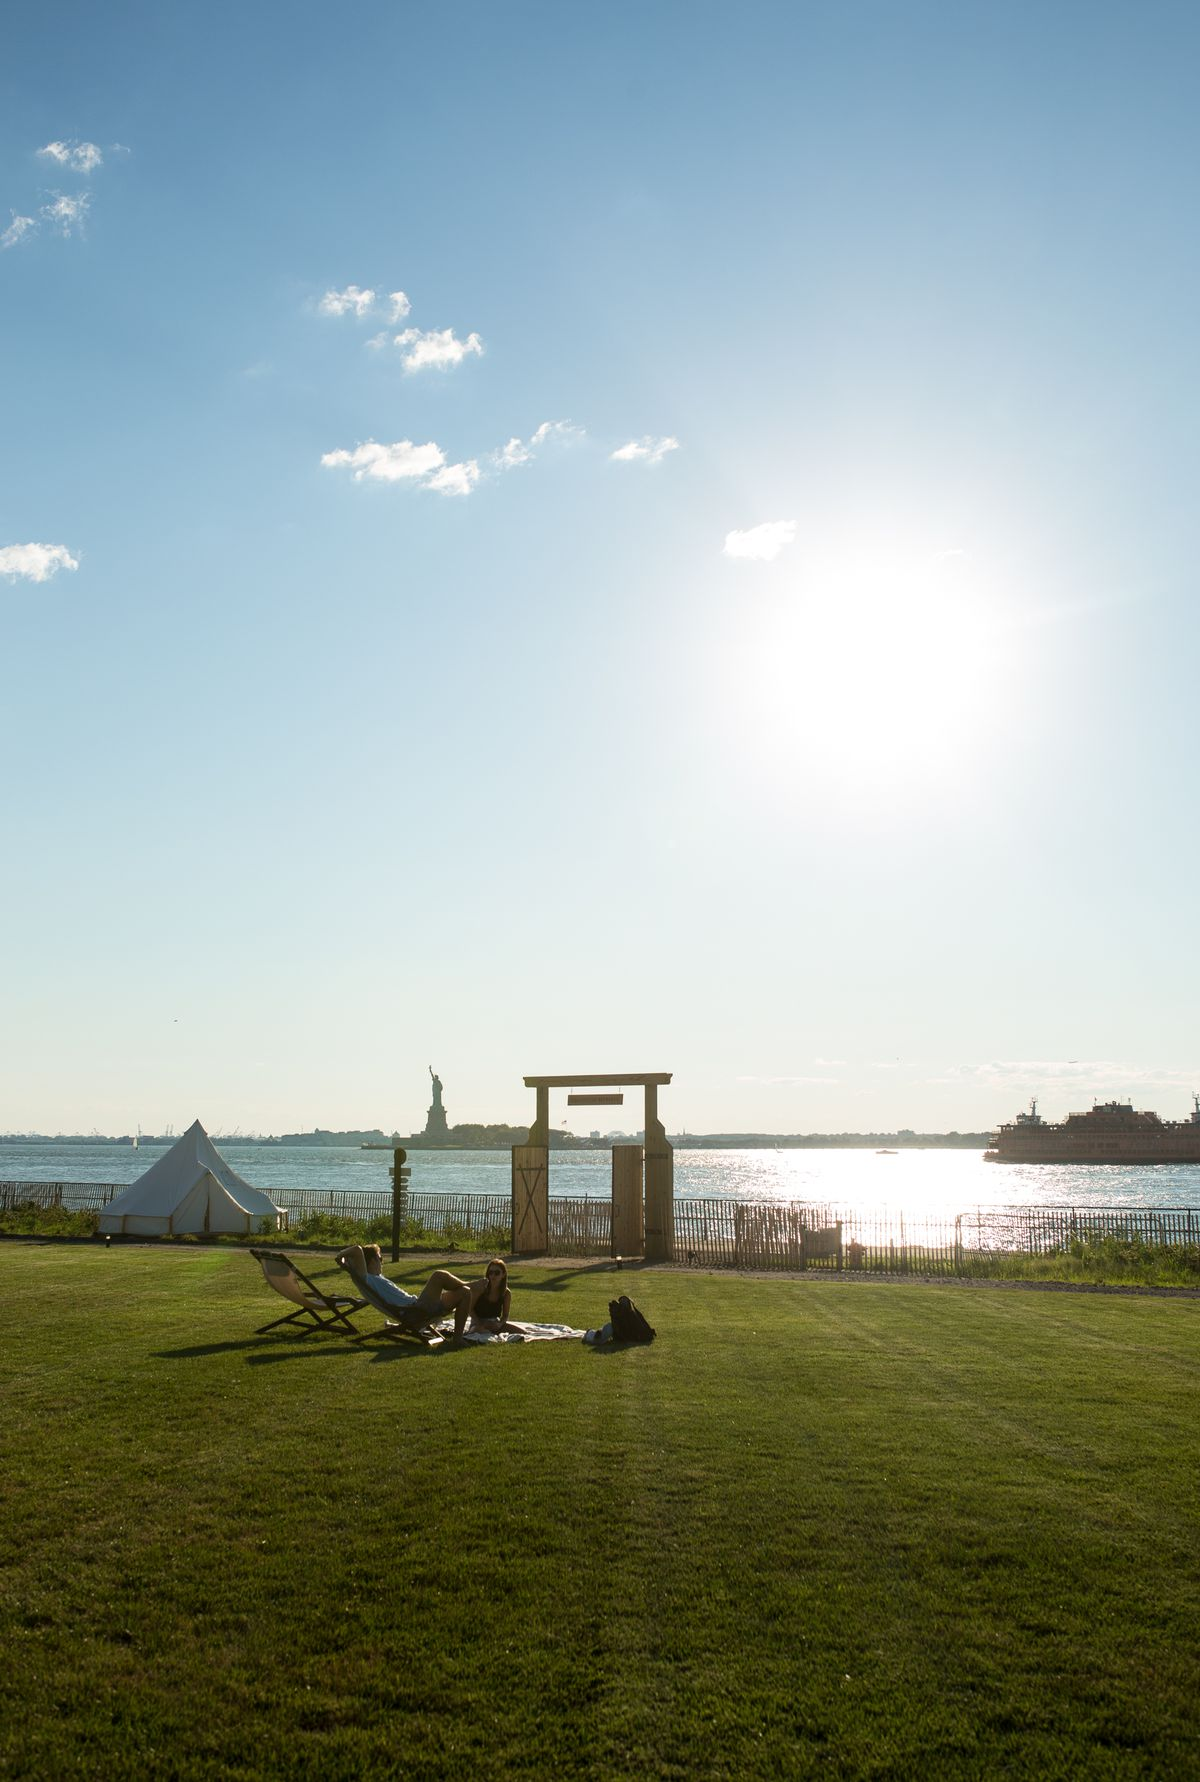 View of glamping site on with Statue of Liberty in the background